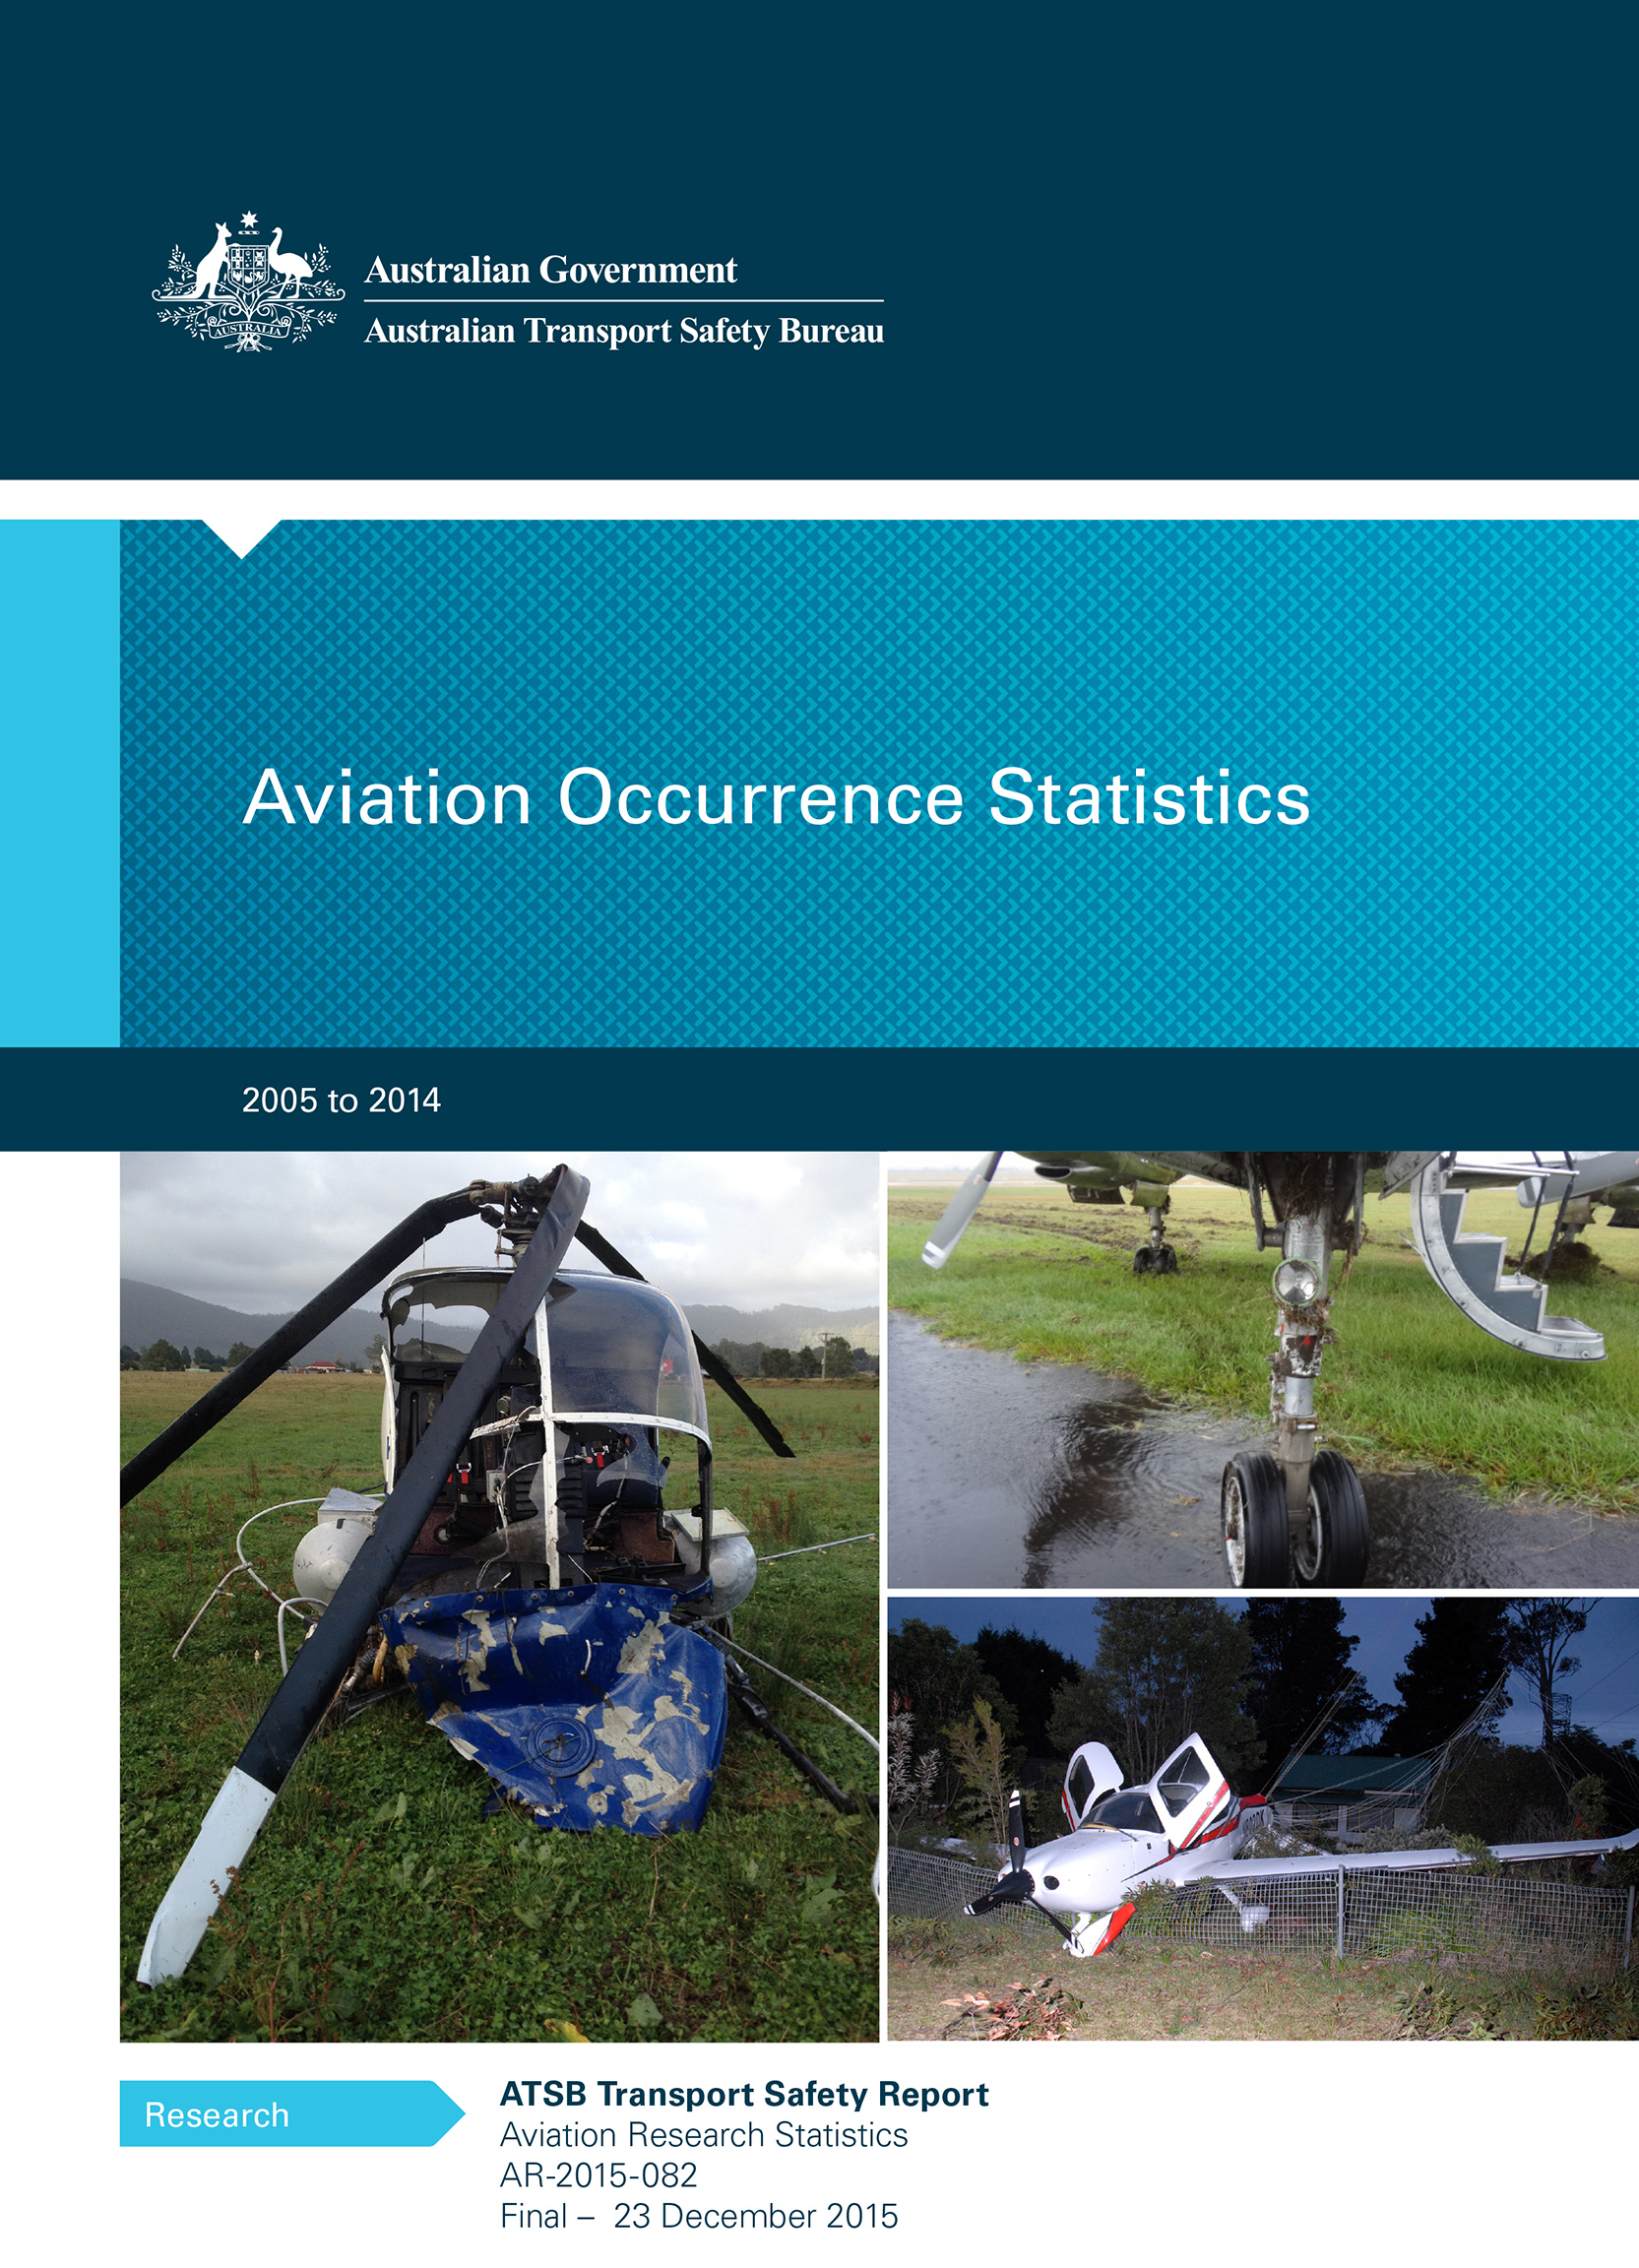 Download complete document - Aviation Occurrence Statistics: 2005 to 2014